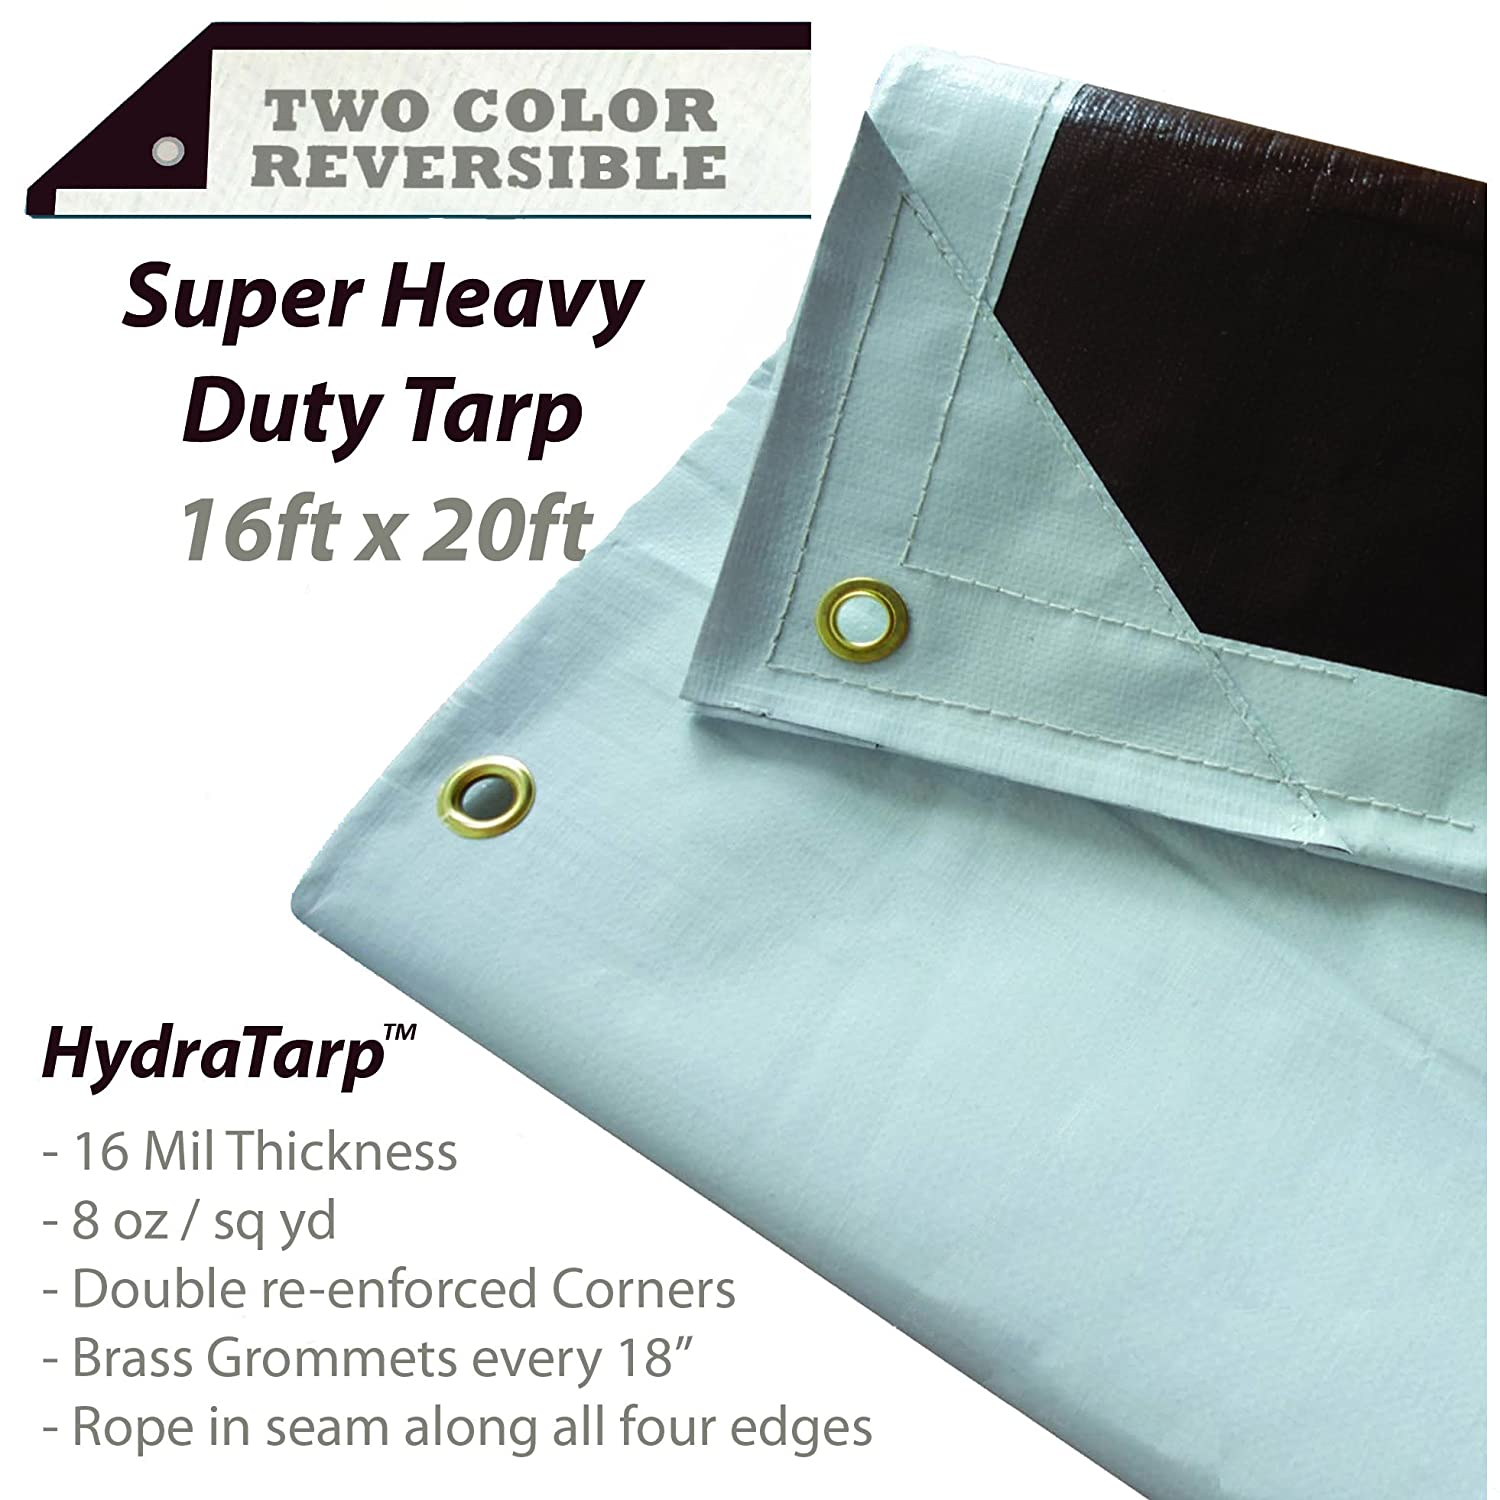 X 12 Ft 16mil Thick White//Brown Reversible Tarp Watershed Innovations Super Heavy Duty Waterproof Tarp HydraTarp 12 Ft